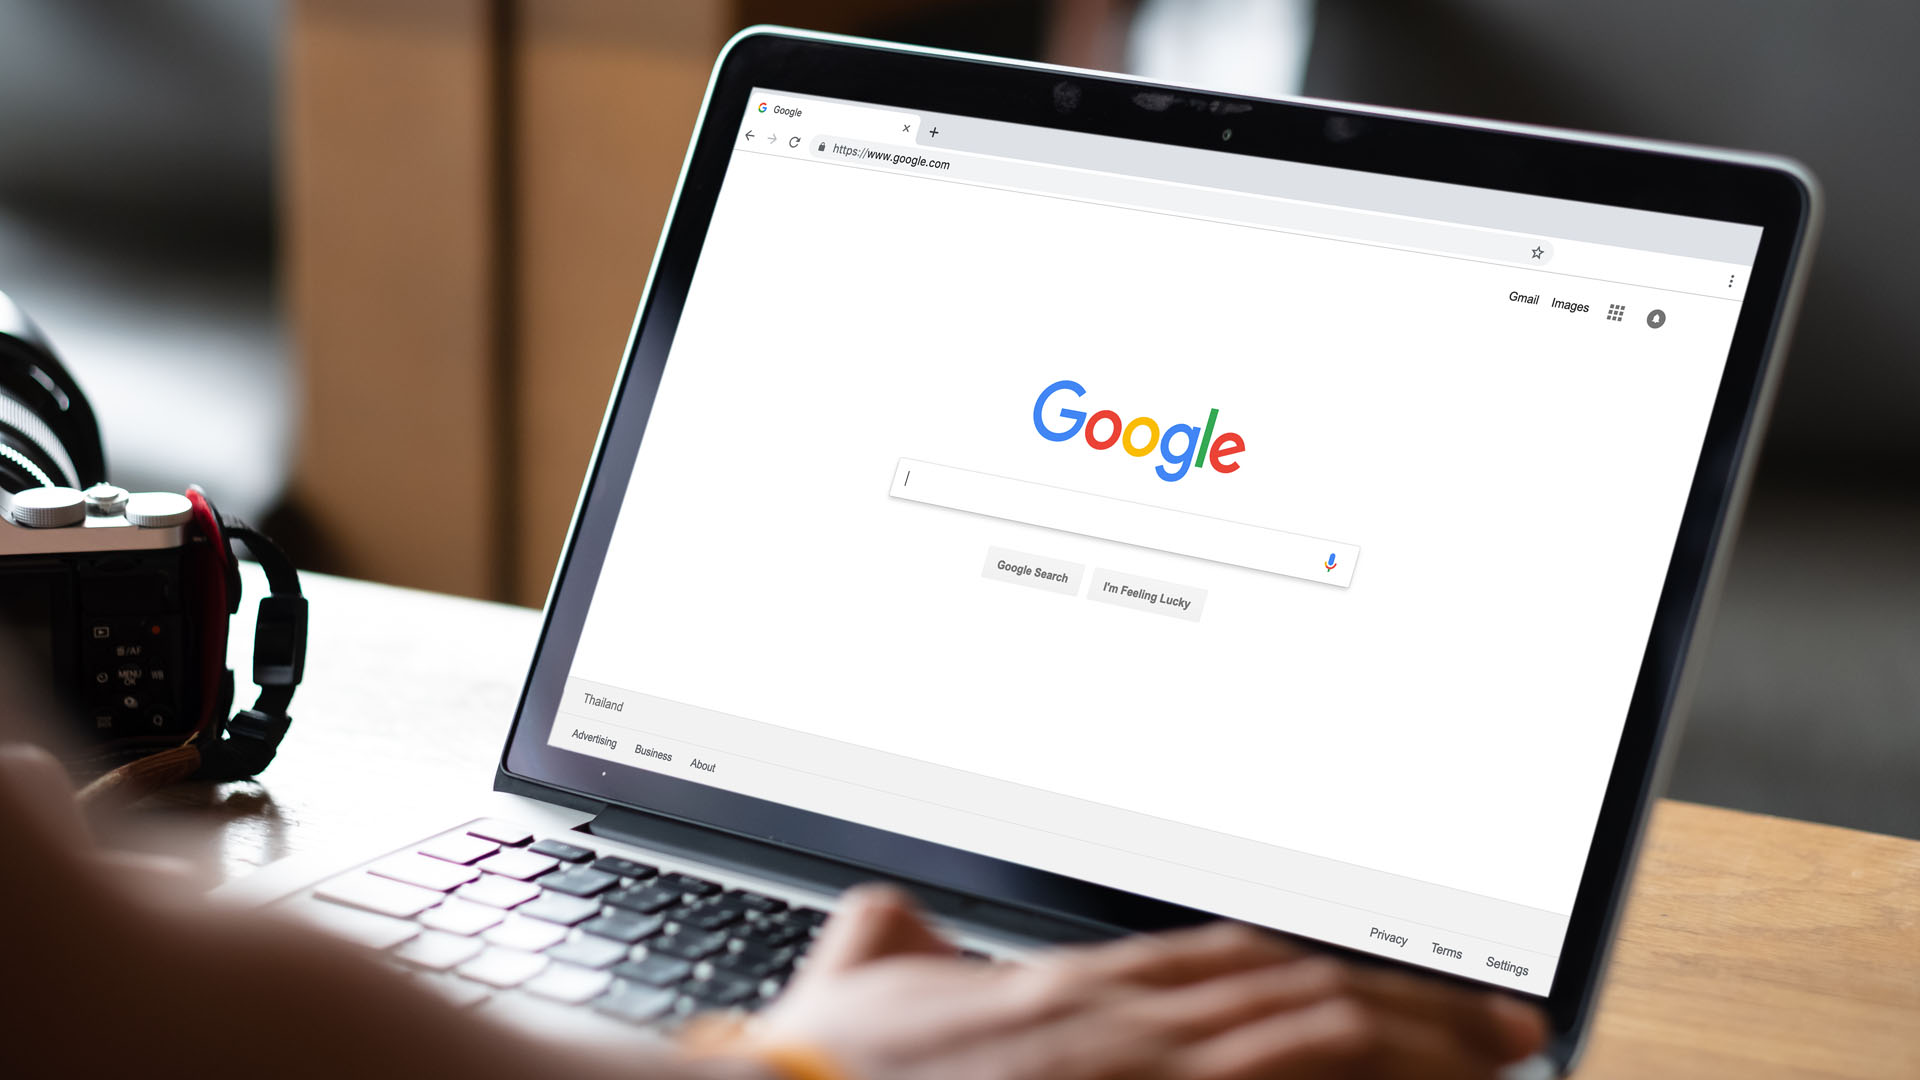 Google Core Update and the New Page Experience Ranking Factor